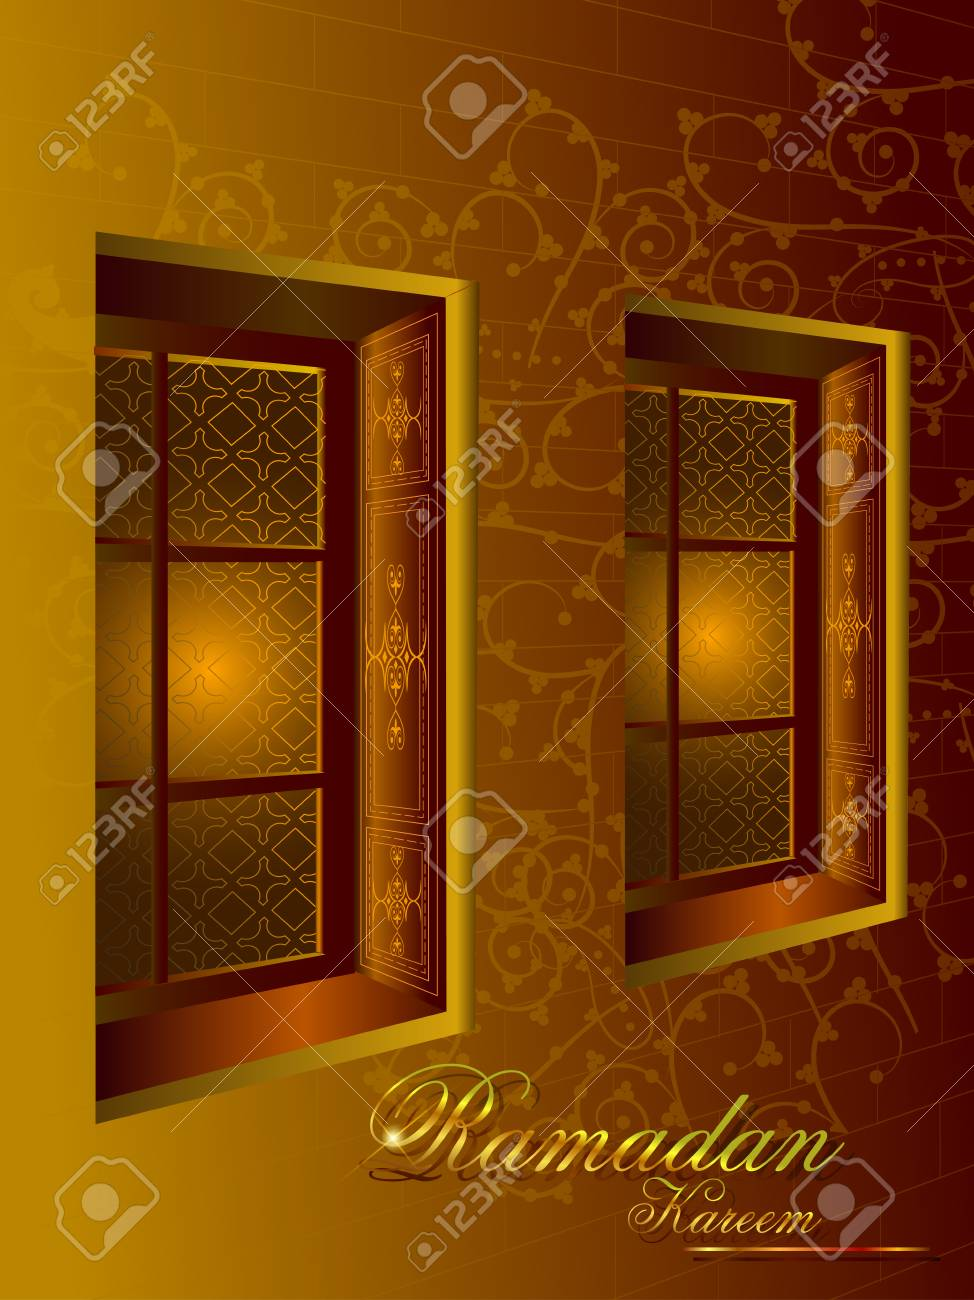 Islamic design mosque door and window for Ramadan Kareem Happy Eid celebration background Stock Vector -  sc 1 st  123RF.com & Islamic Design Mosque Door And Window For Ramadan Kareem Happy ...